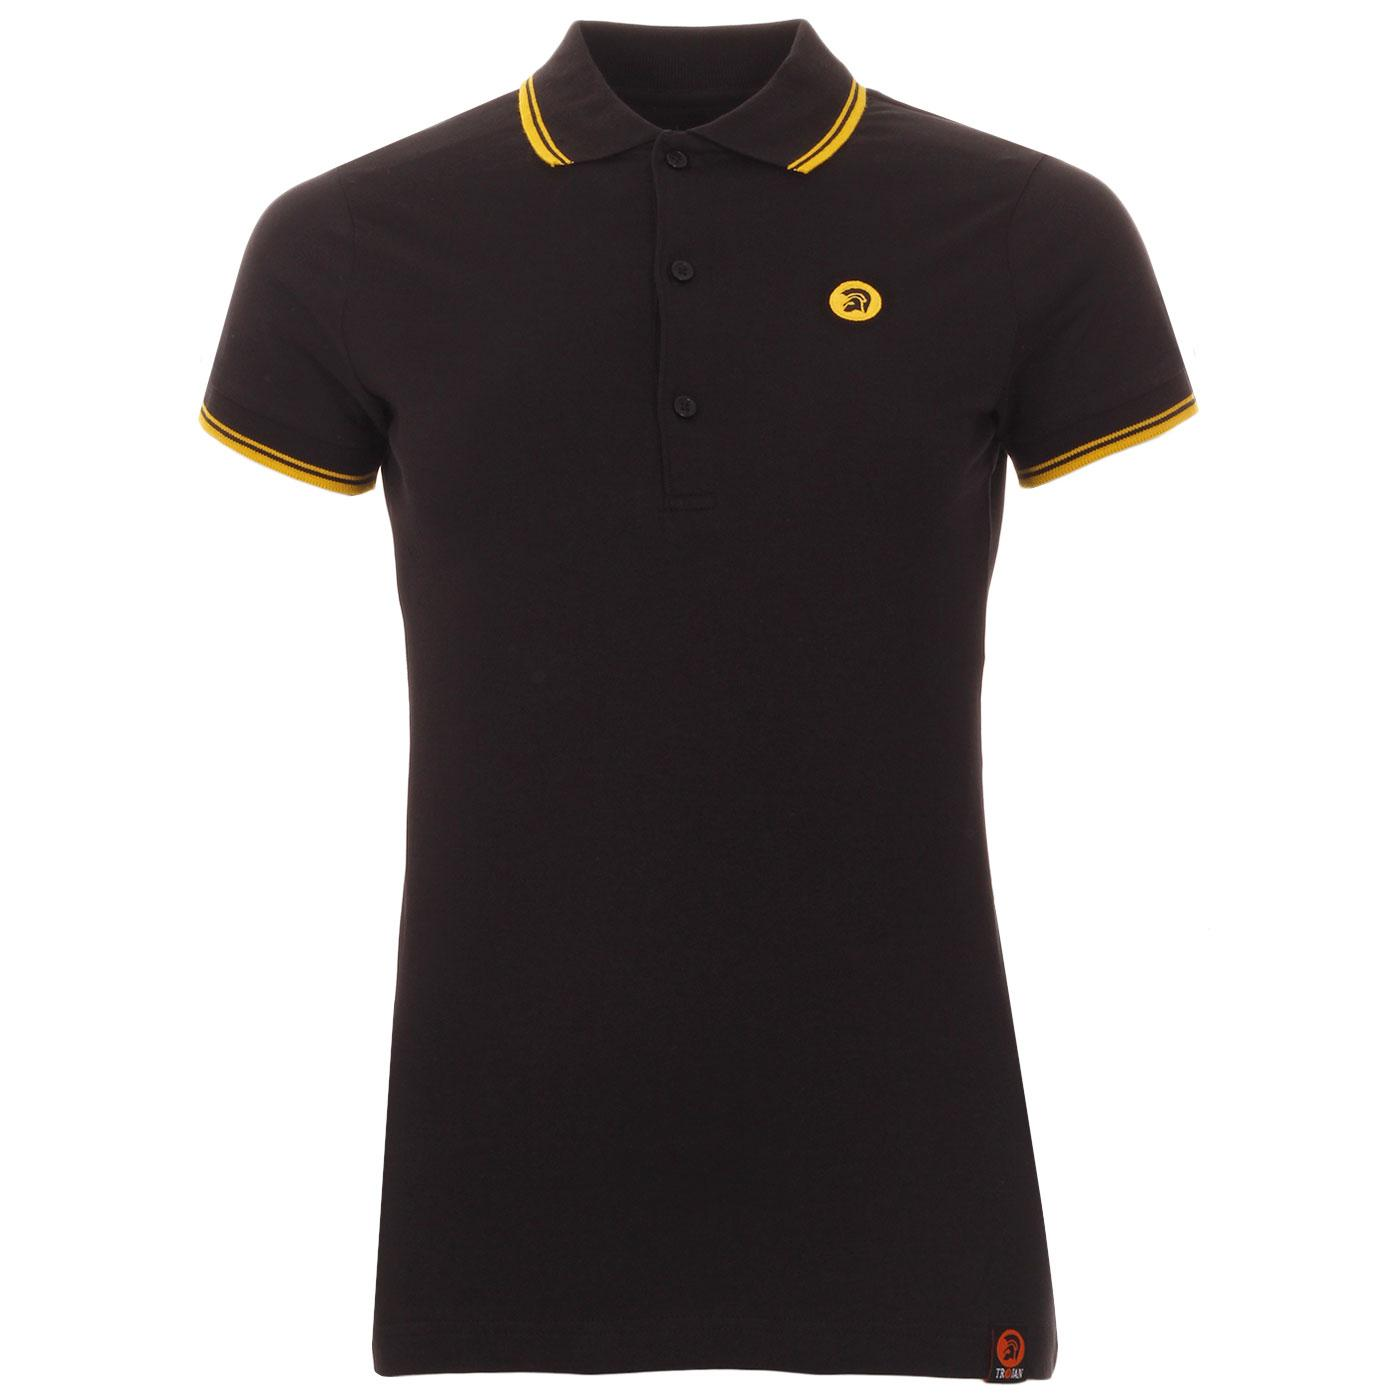 TROJAN RECORDS Women's Mod Ska Tipped Polo Top B/Y